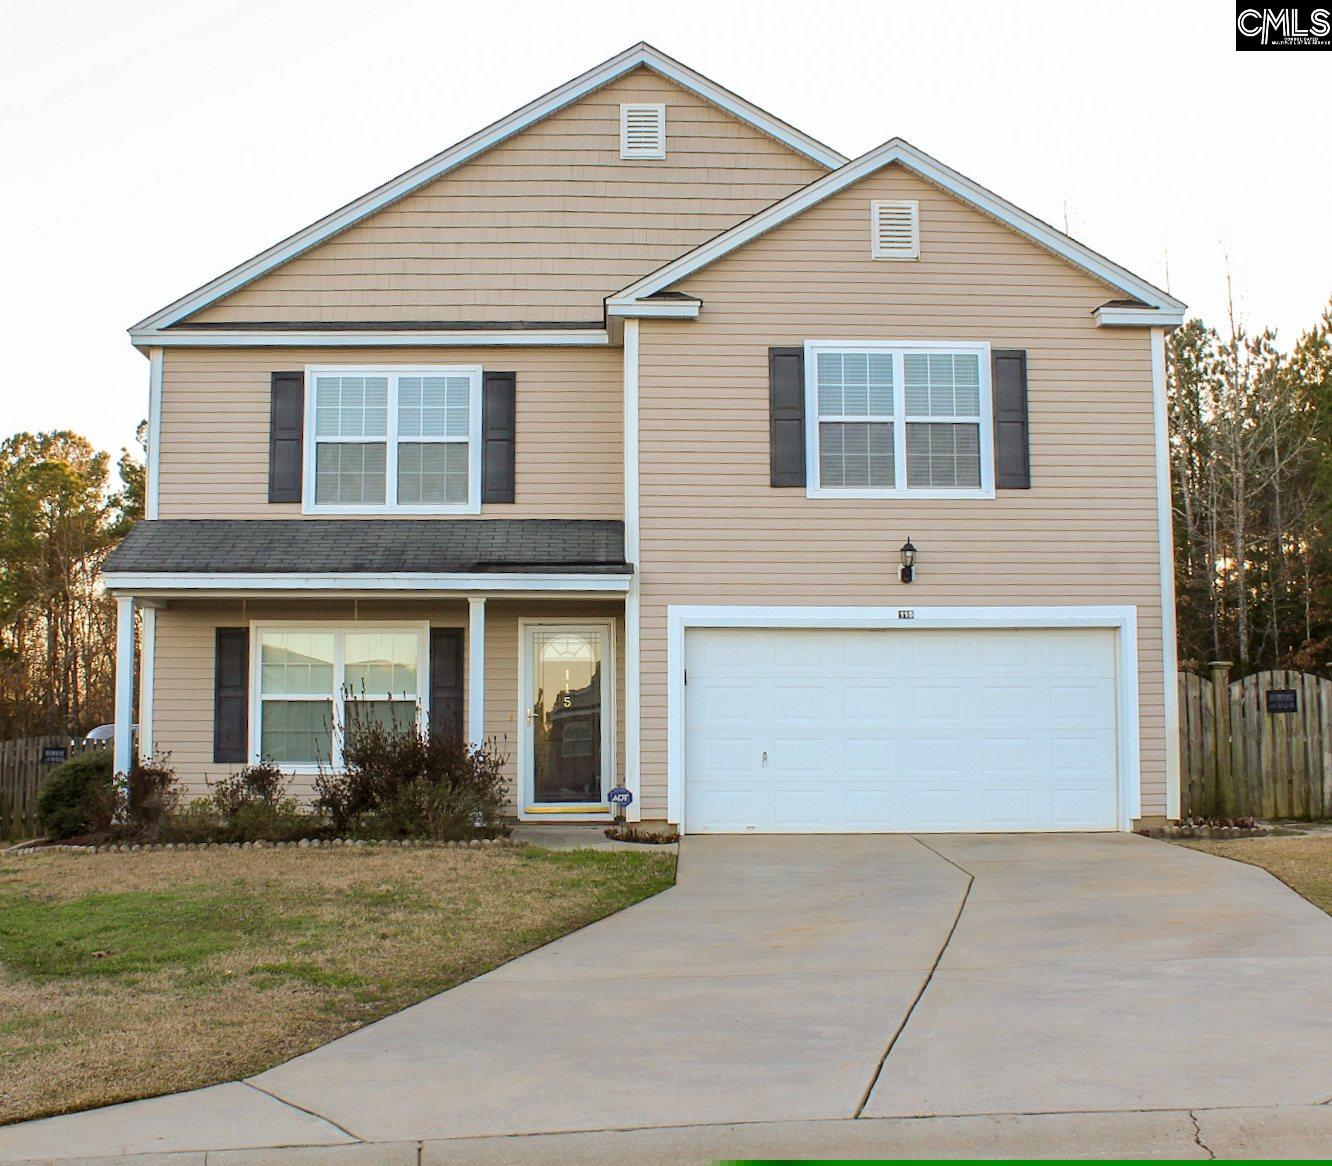 115 Ironcrest Columbia, SC 29212